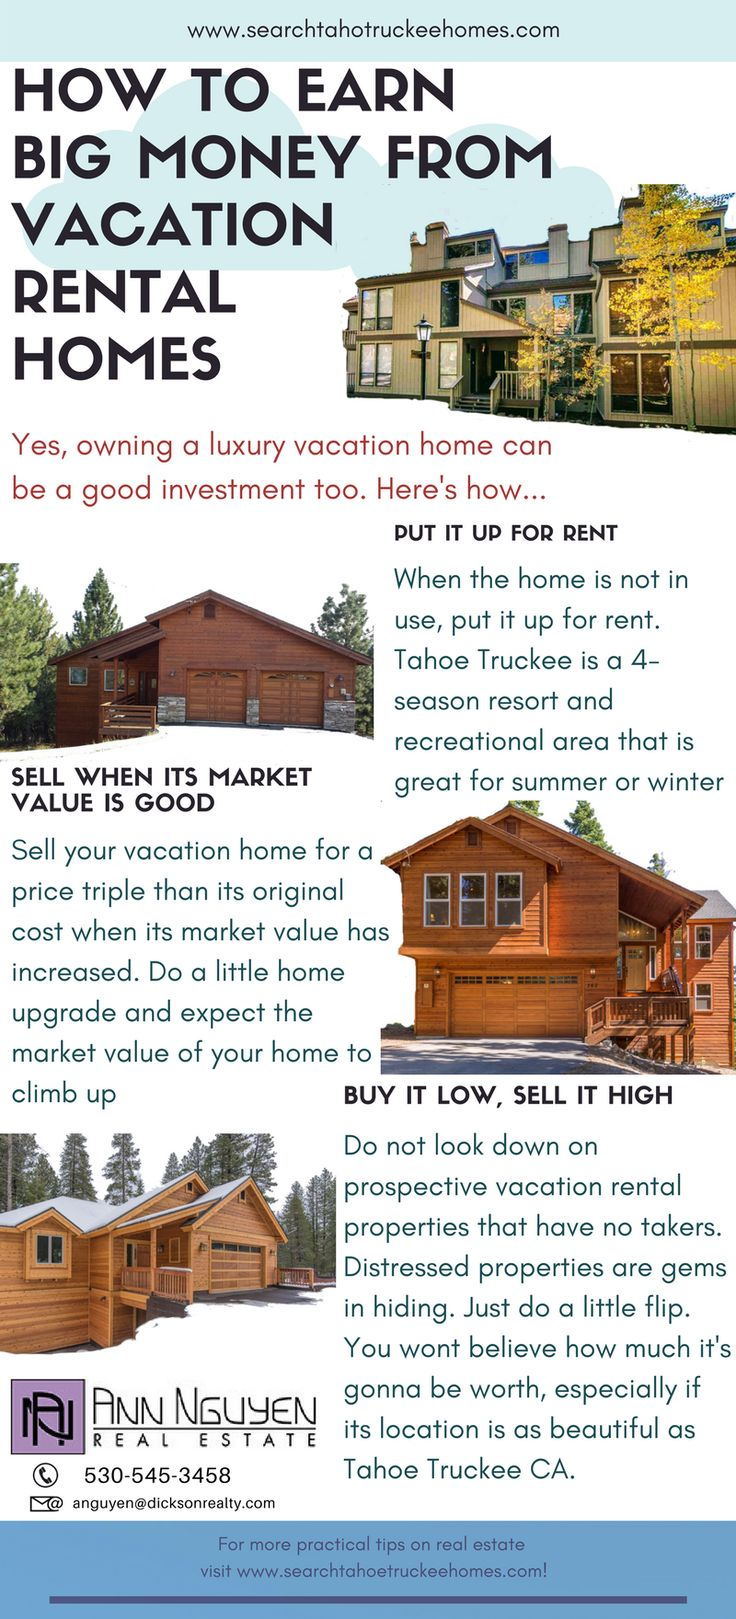 Owning vacation rental homes is a good investment too because you can actually earn big money from them.